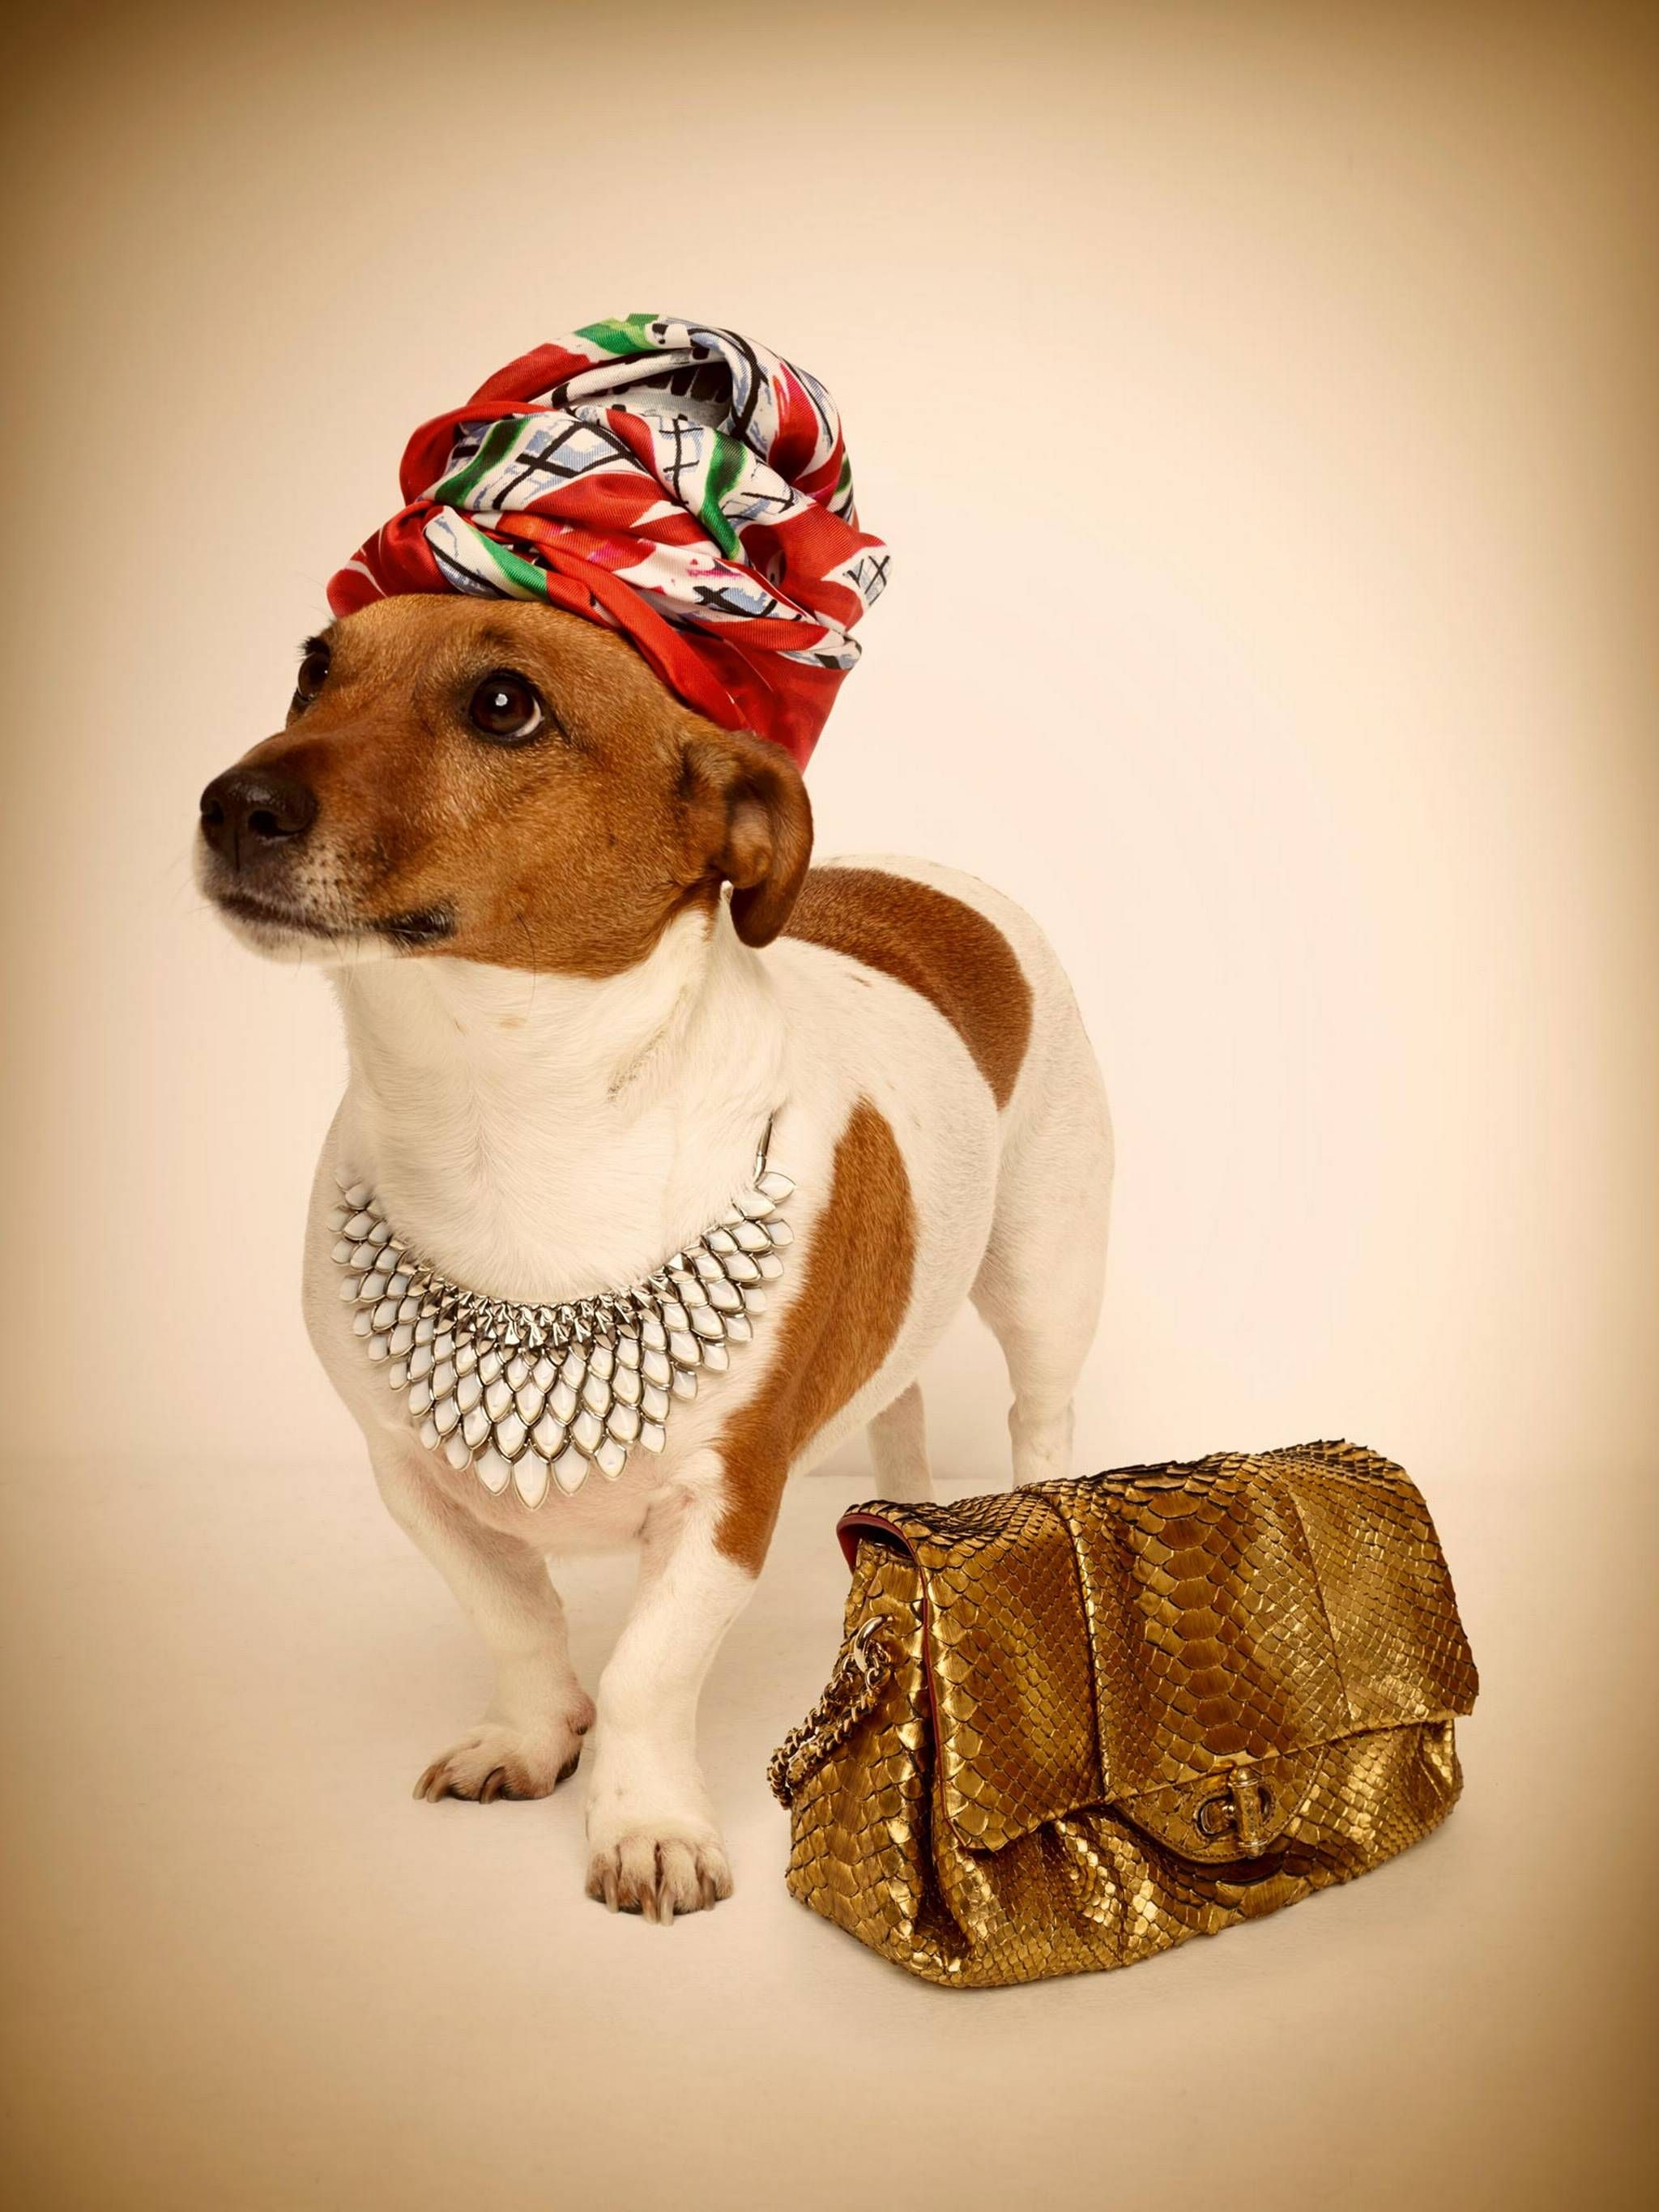 Terrier in a turban Dogs and Cats in Turbans